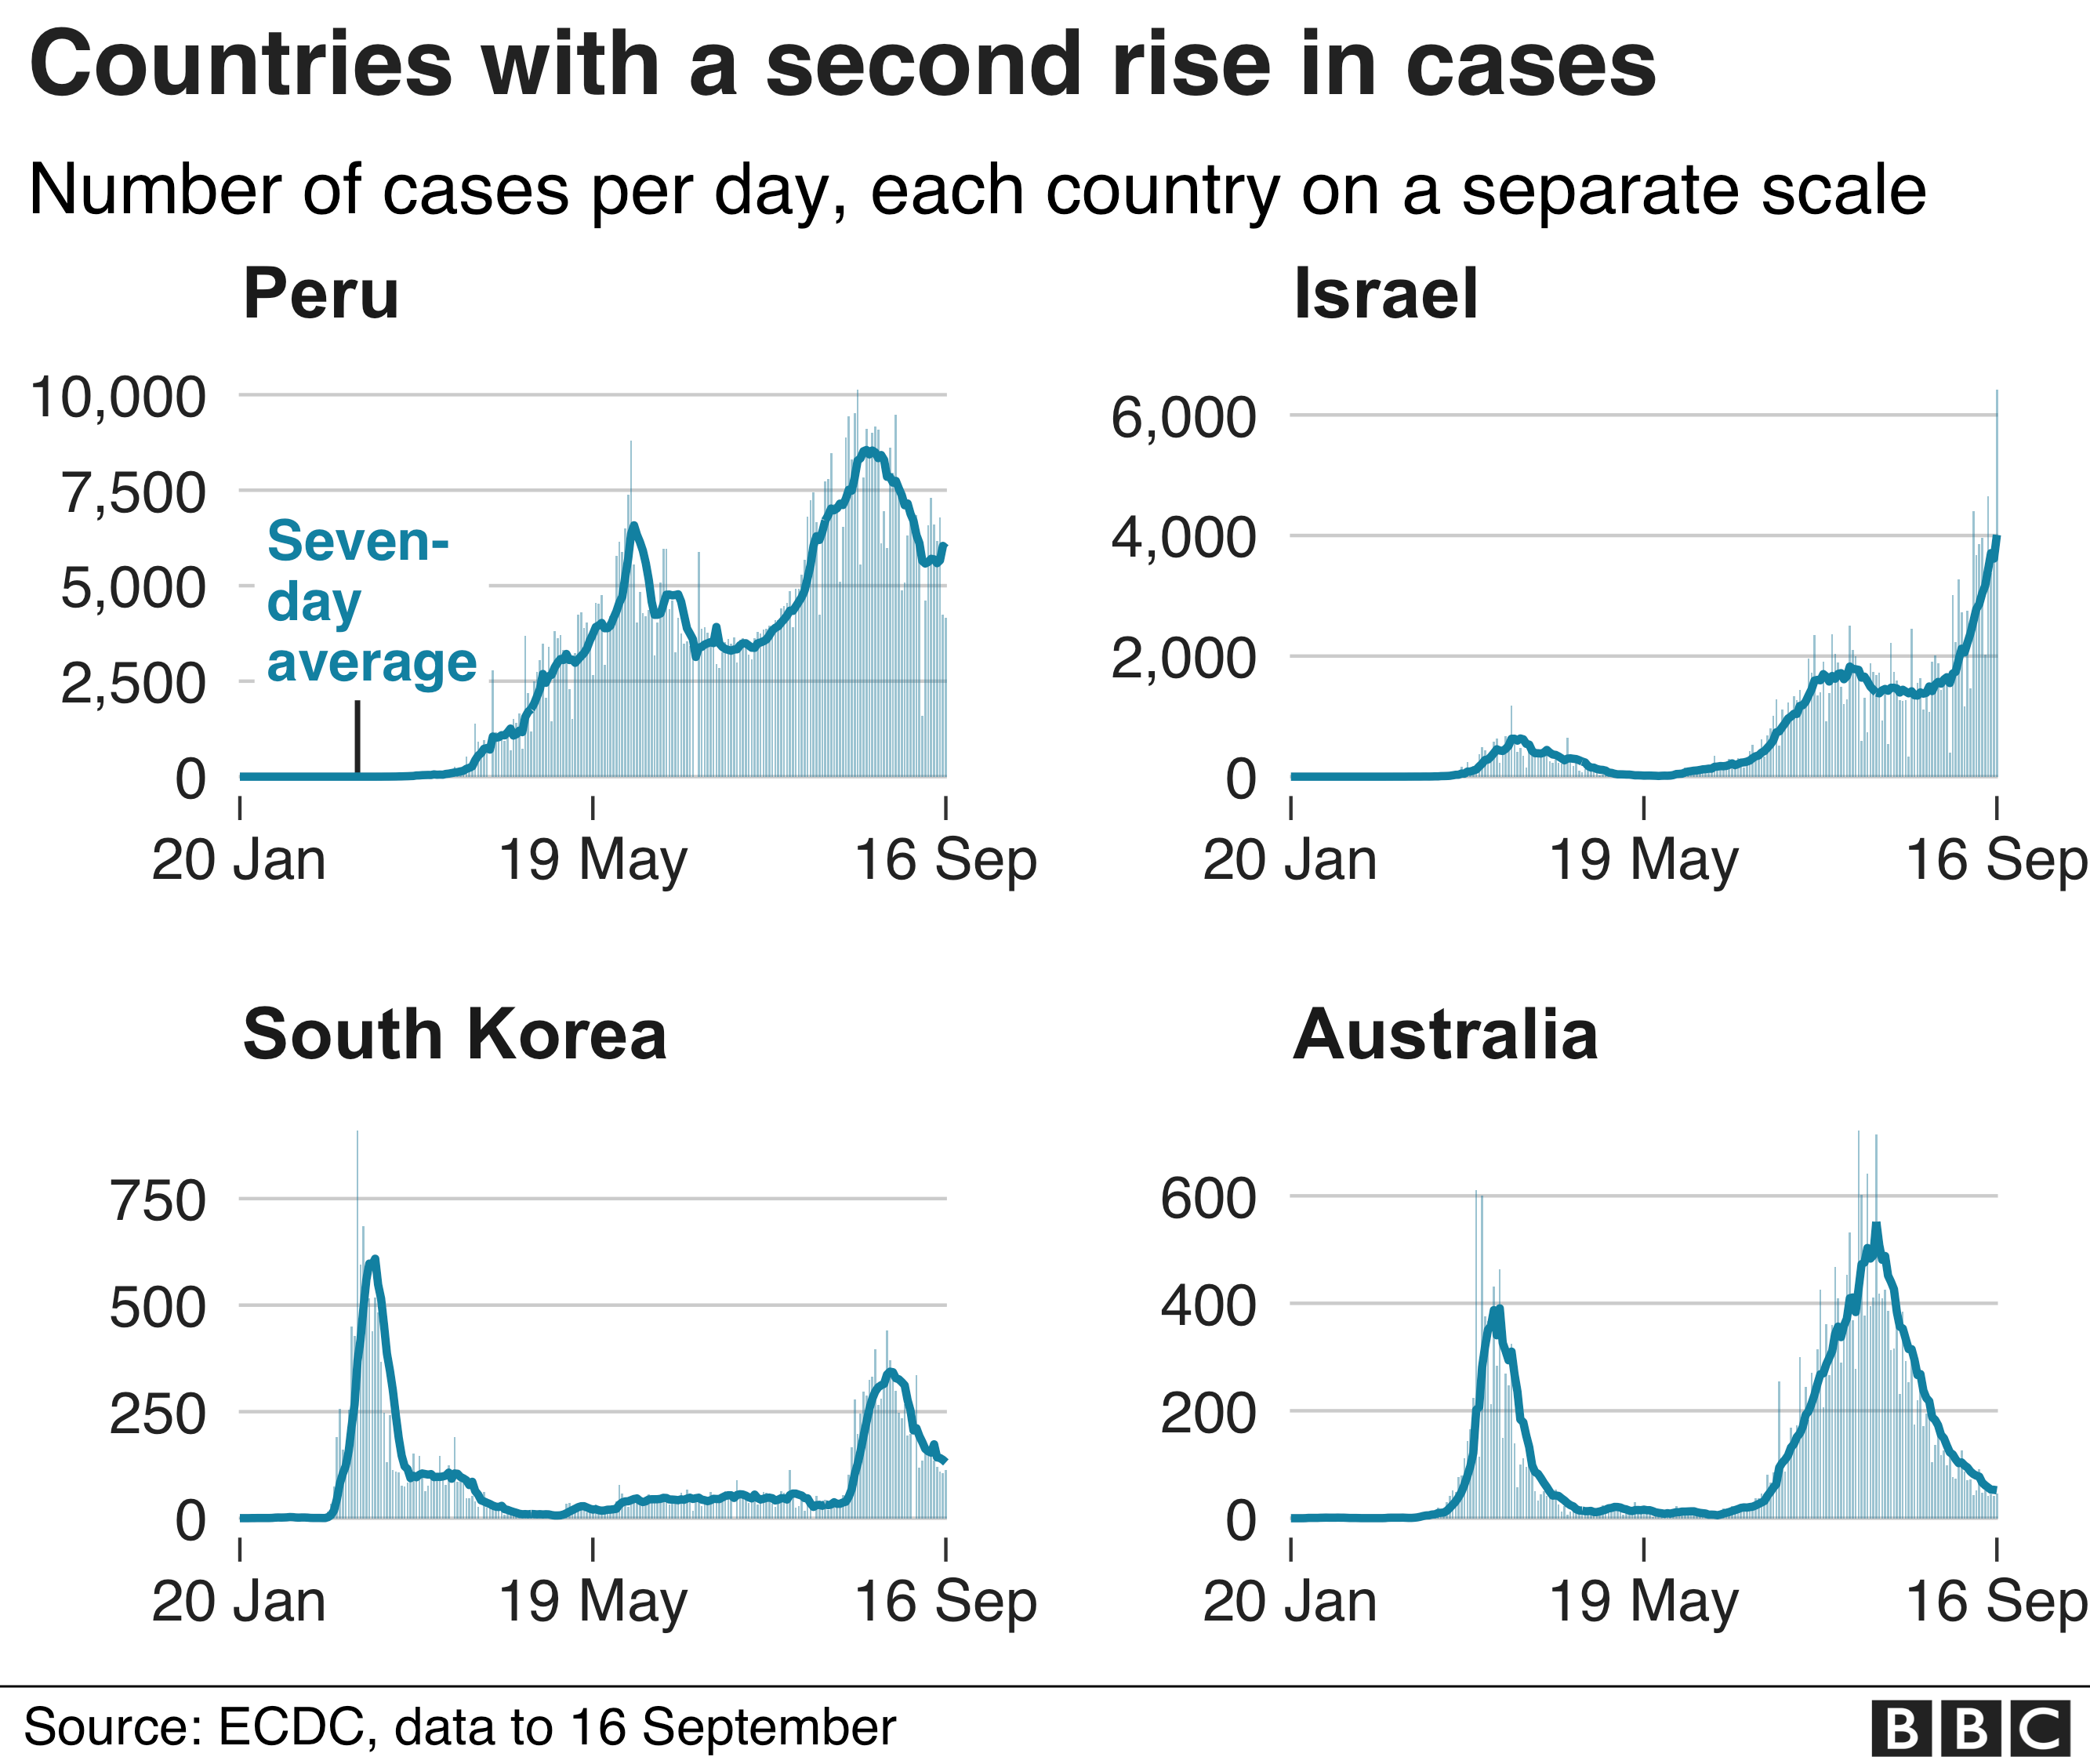 Chart shows countries which have seen a second rise in cases like Peru, Israel, South Korea and Australia